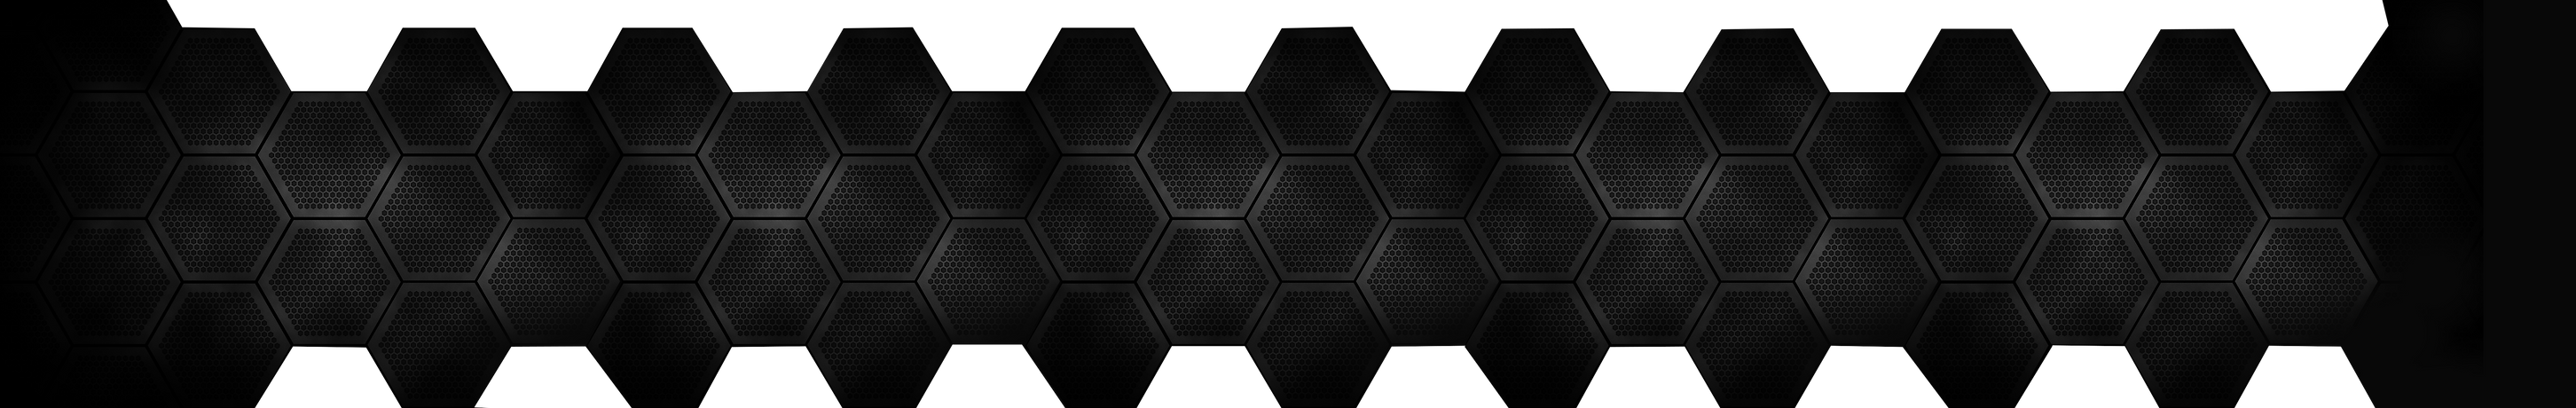 dark-4k-wallpaper-android-hex-wallpapers